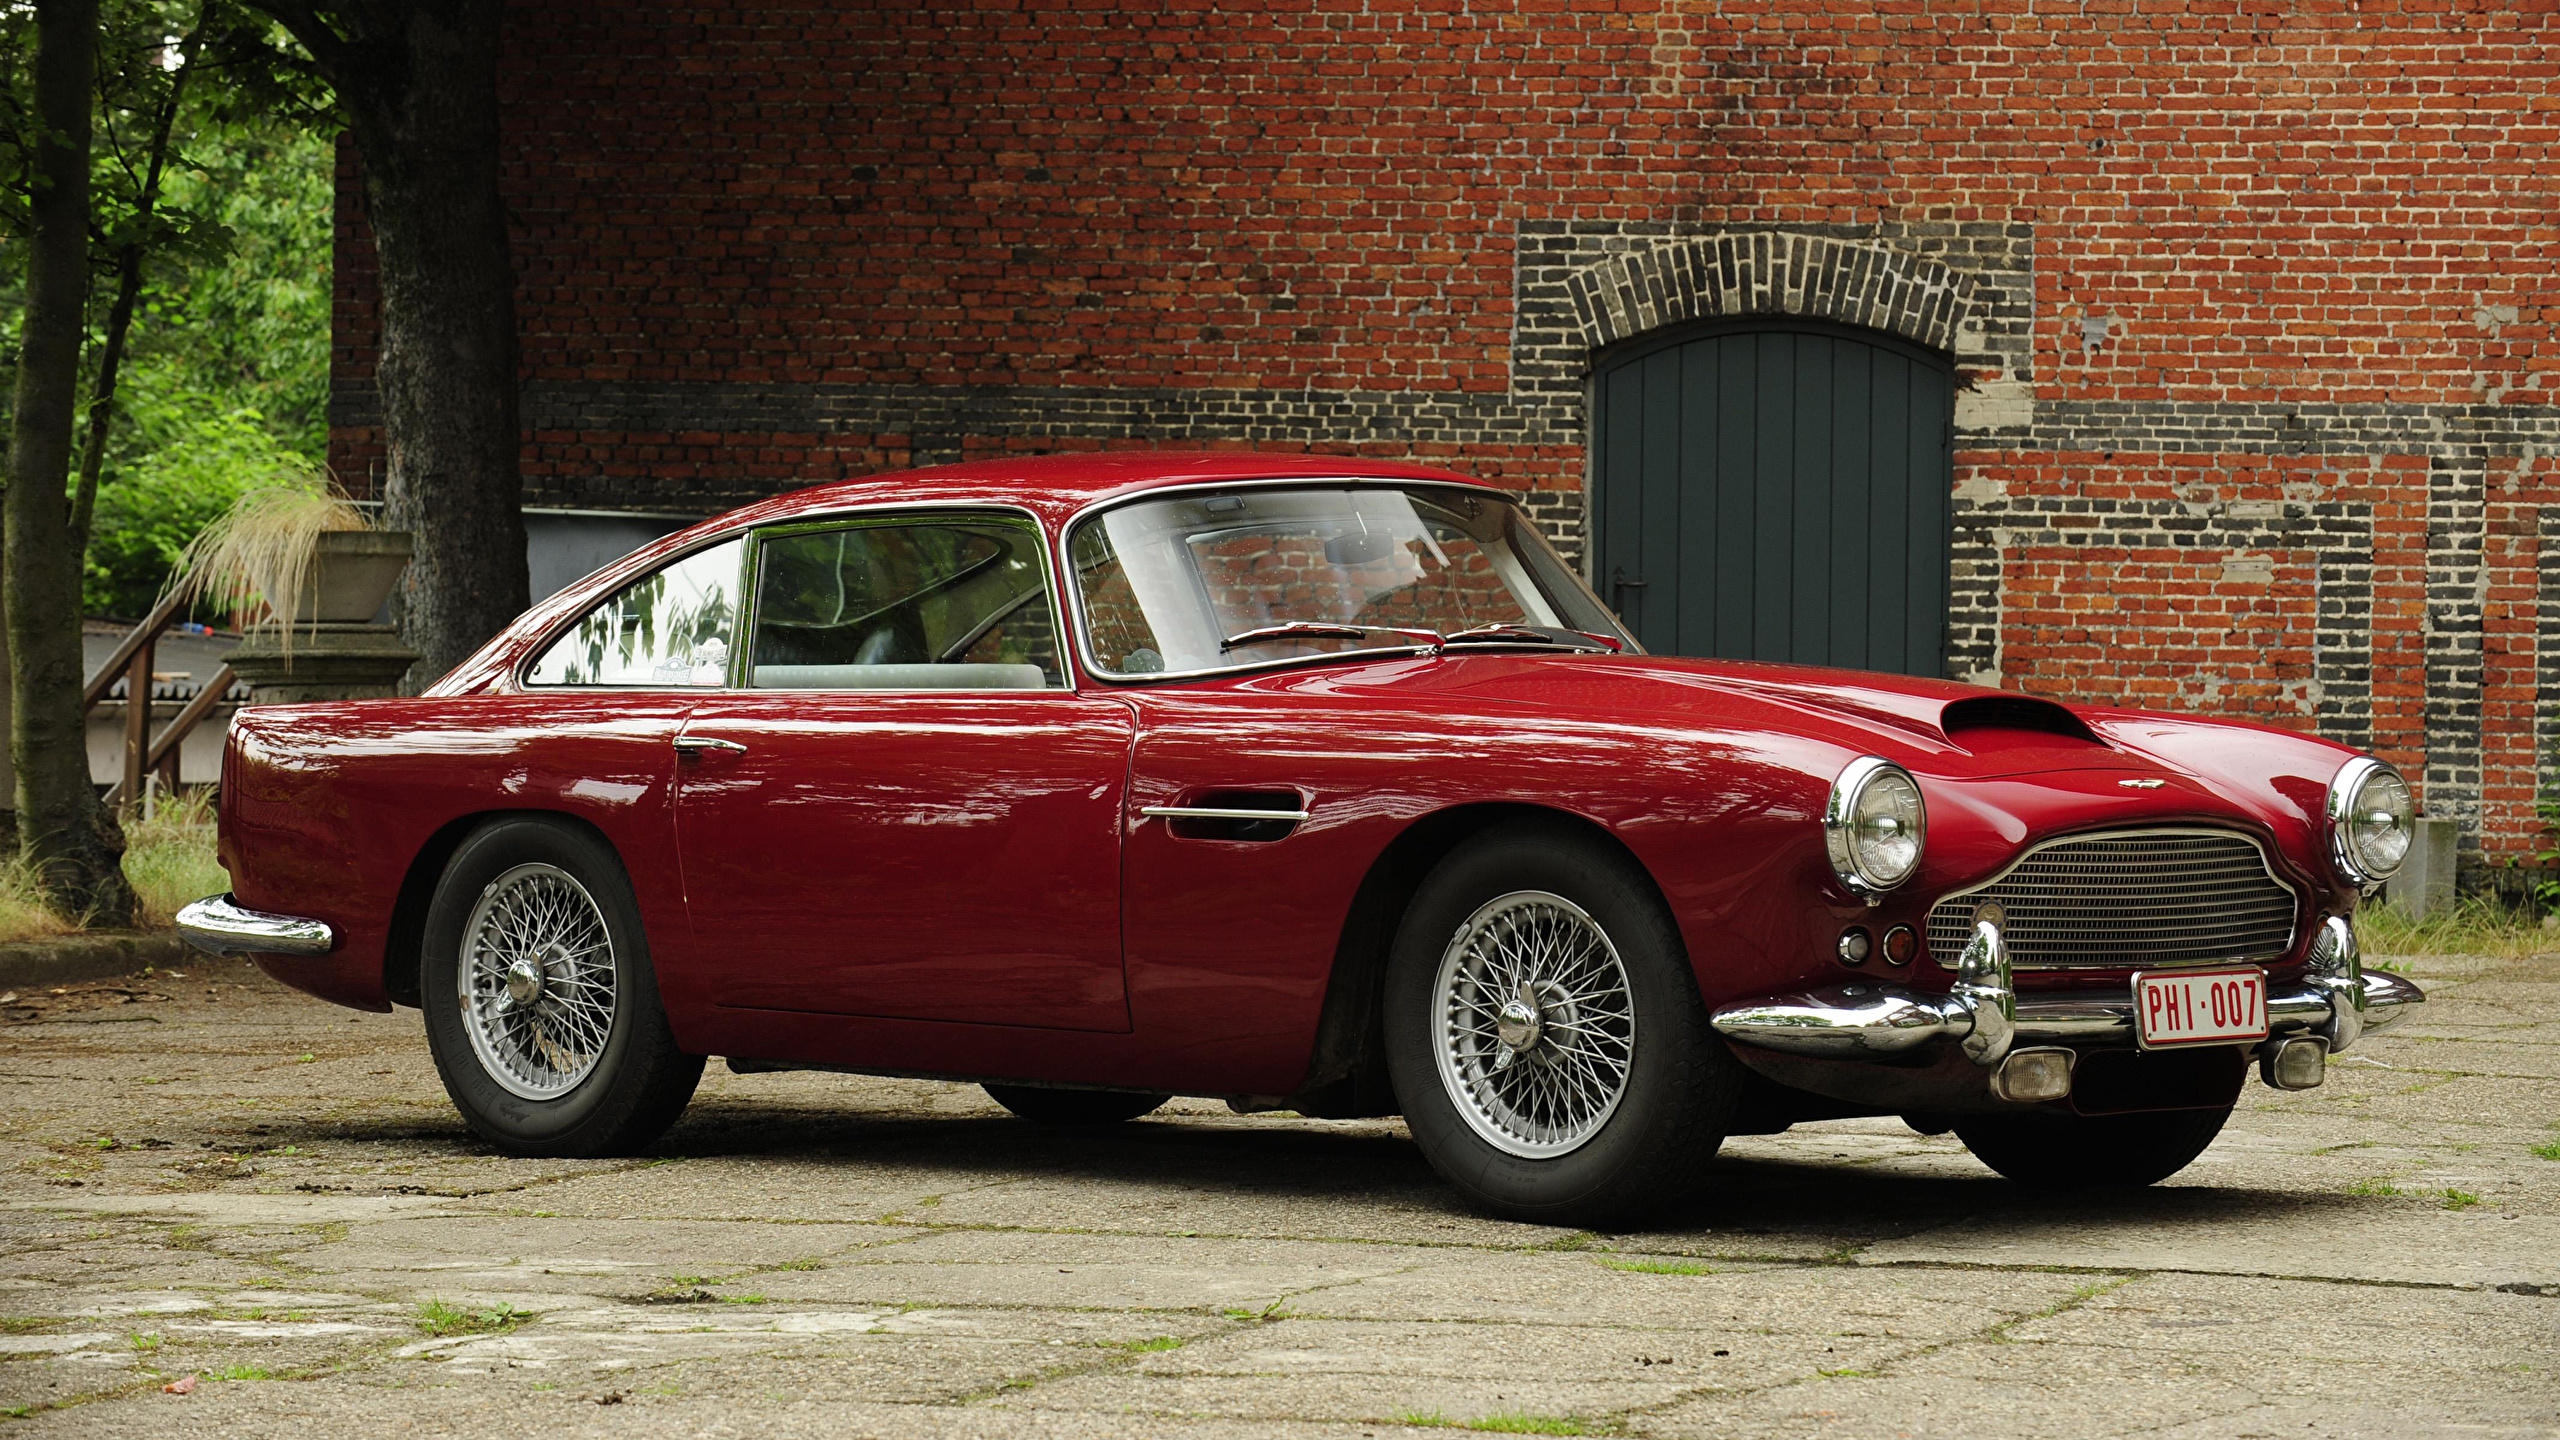 Pictures Aston Martin 1960 61 Db4 Worldwide Touring Red 2560x1440